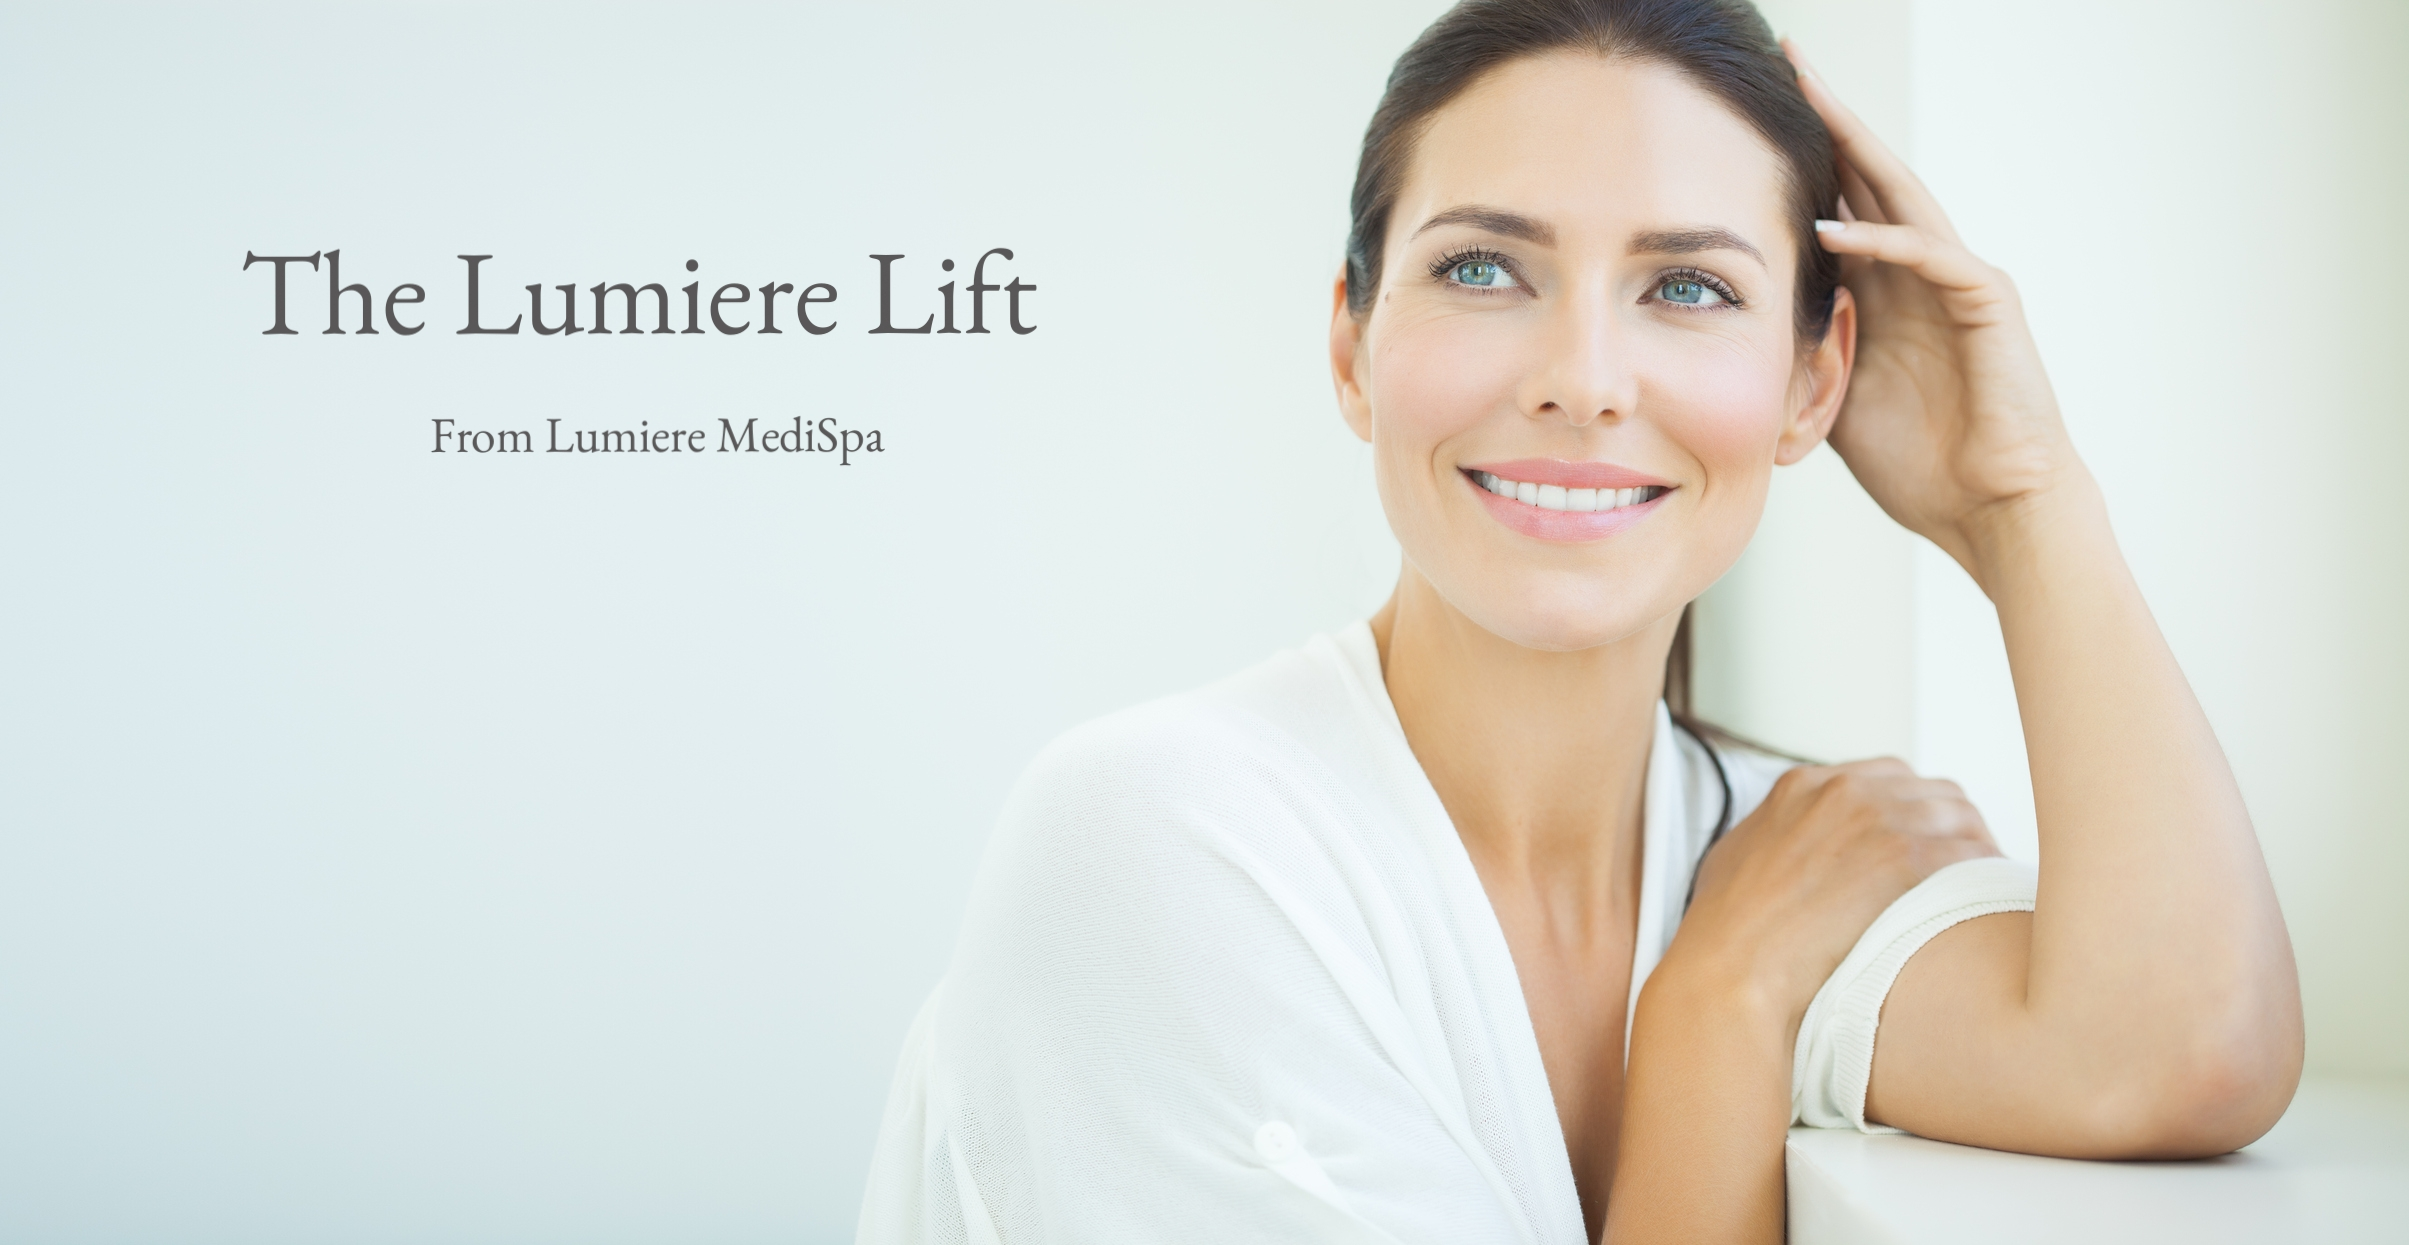 Non-surgical Facelift At Lumiere MediSpa In Oxfordshire